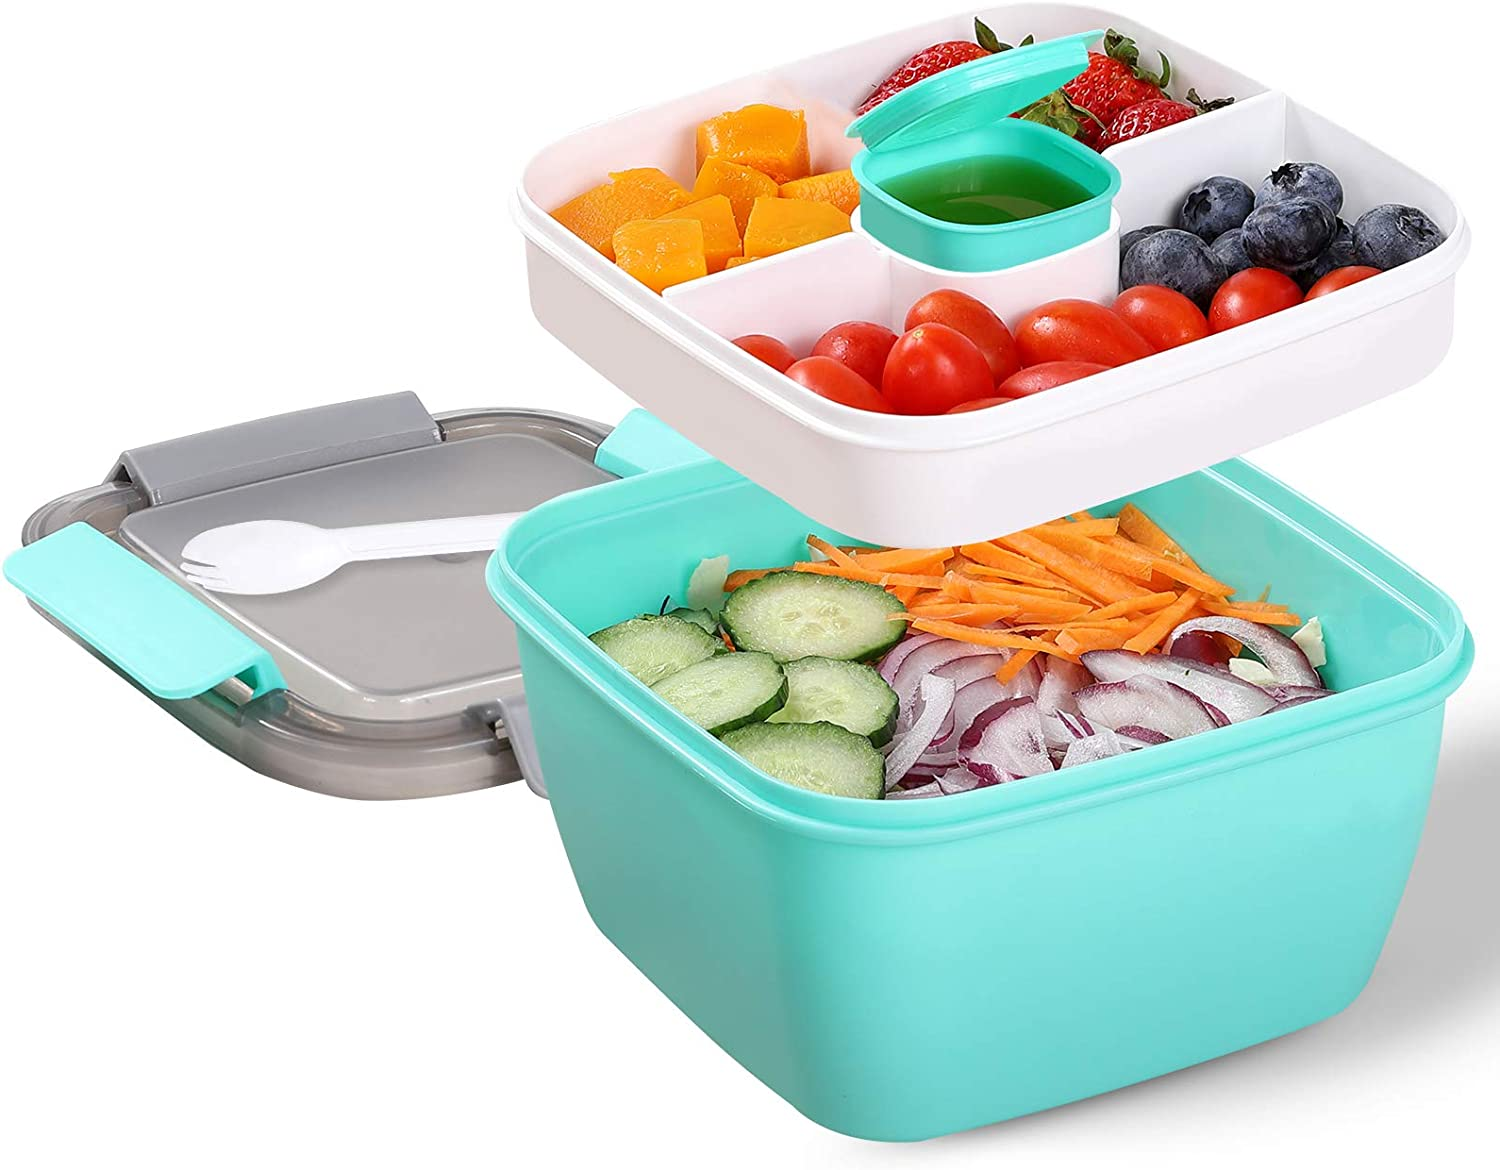 Portable Salad Lunch Container - 38 Oz Salad Bowl - 2 Compartments with Dressing Cup, Large Bento Boxes, Meal Prep to go Containers for Food Fruit Snack